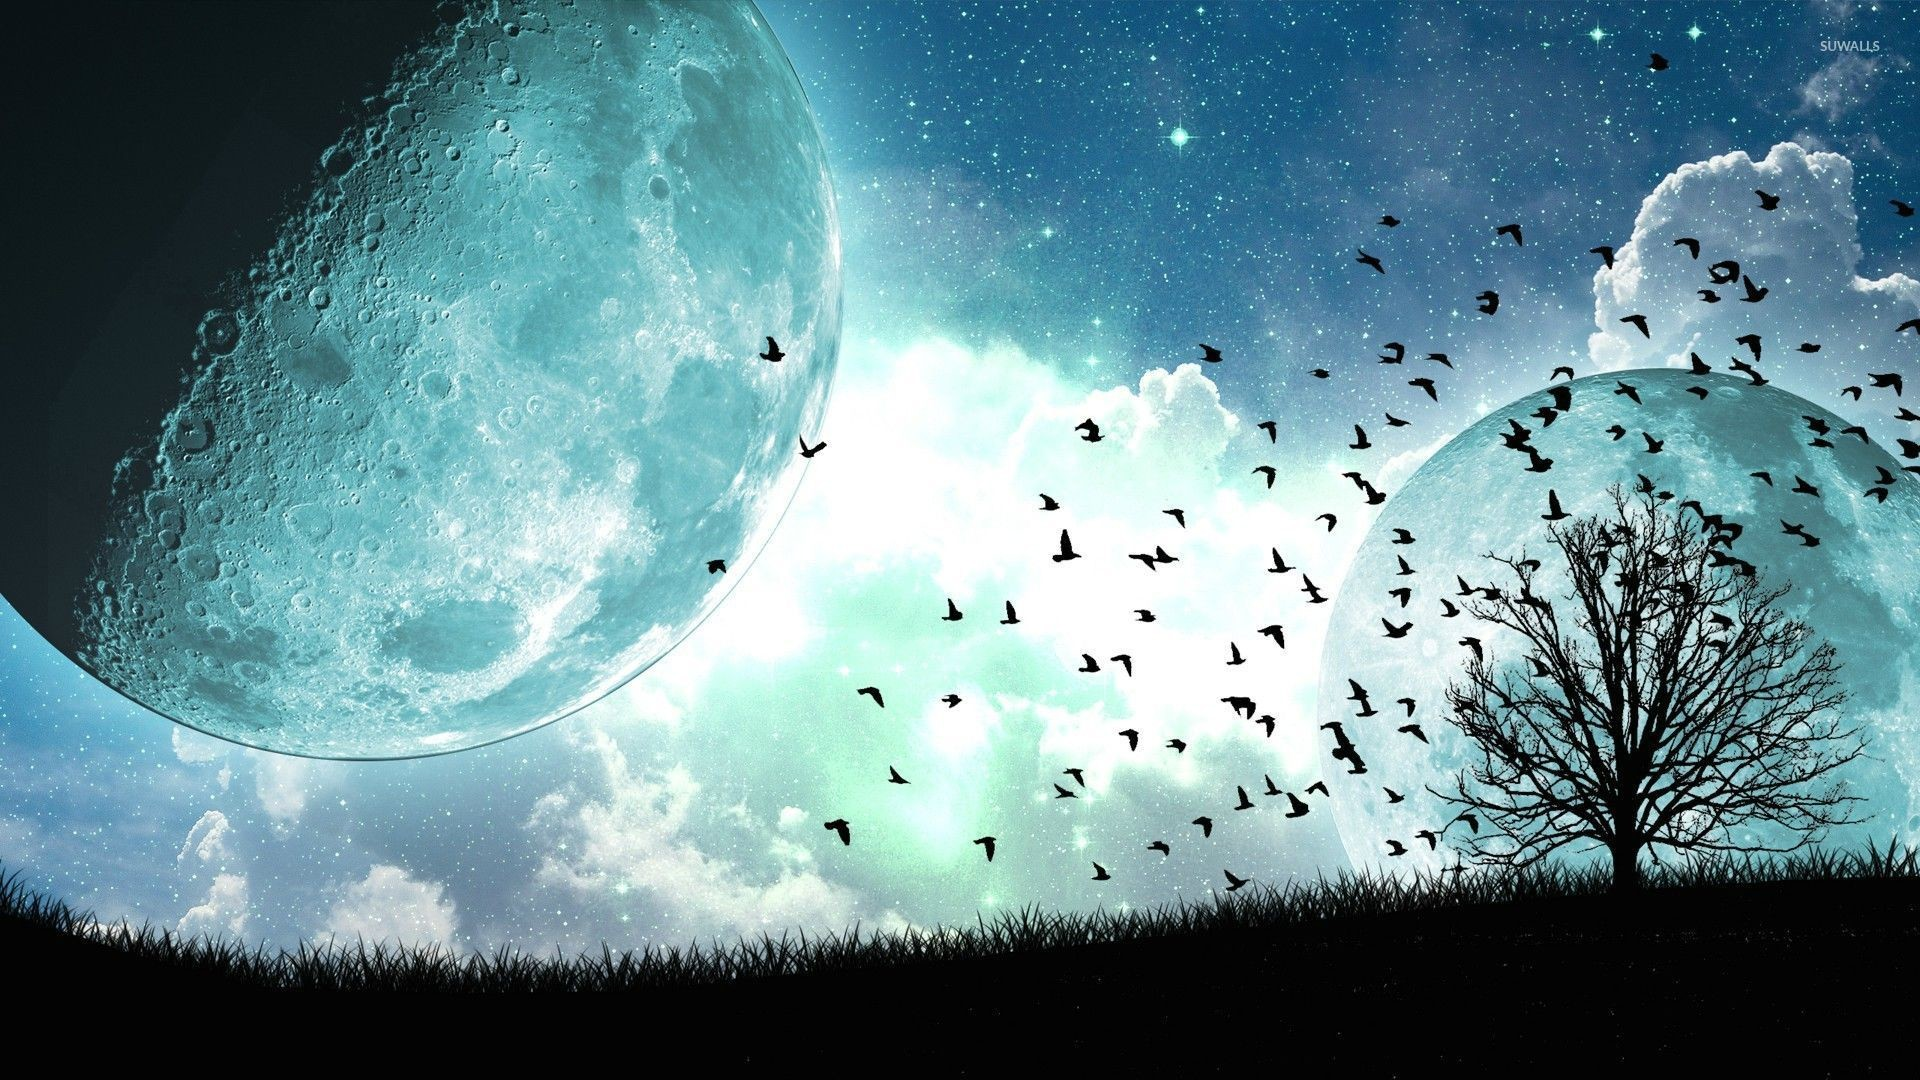 Res: 1920x1080, Birds and tree under the blue moon wallpaper